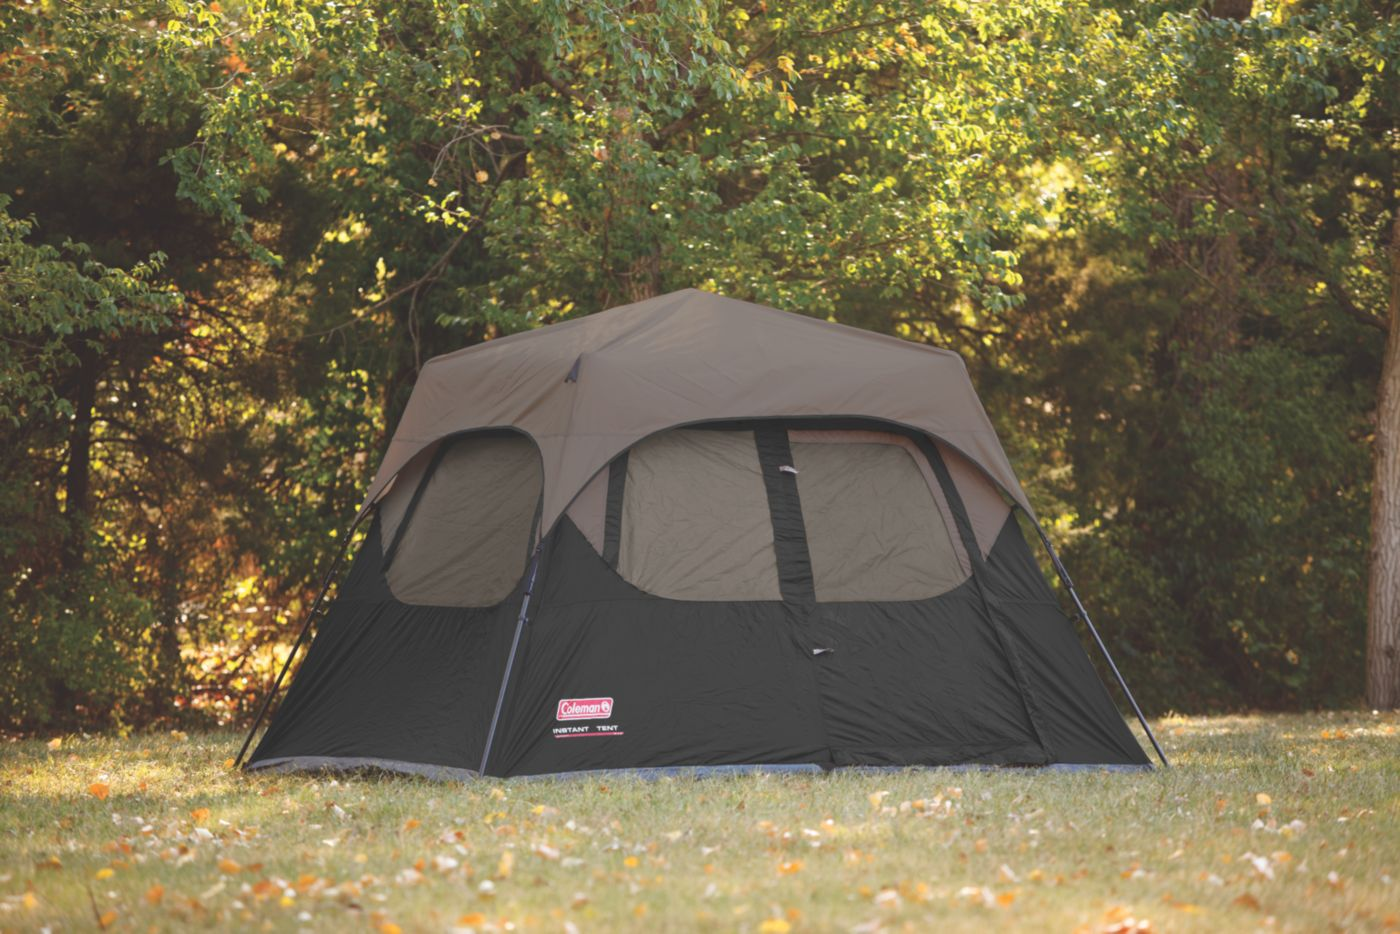 6-Person Instant Tent Rainfly Accessory  sc 1 st  Coleman : 10 person coleman instant tent - memphite.com